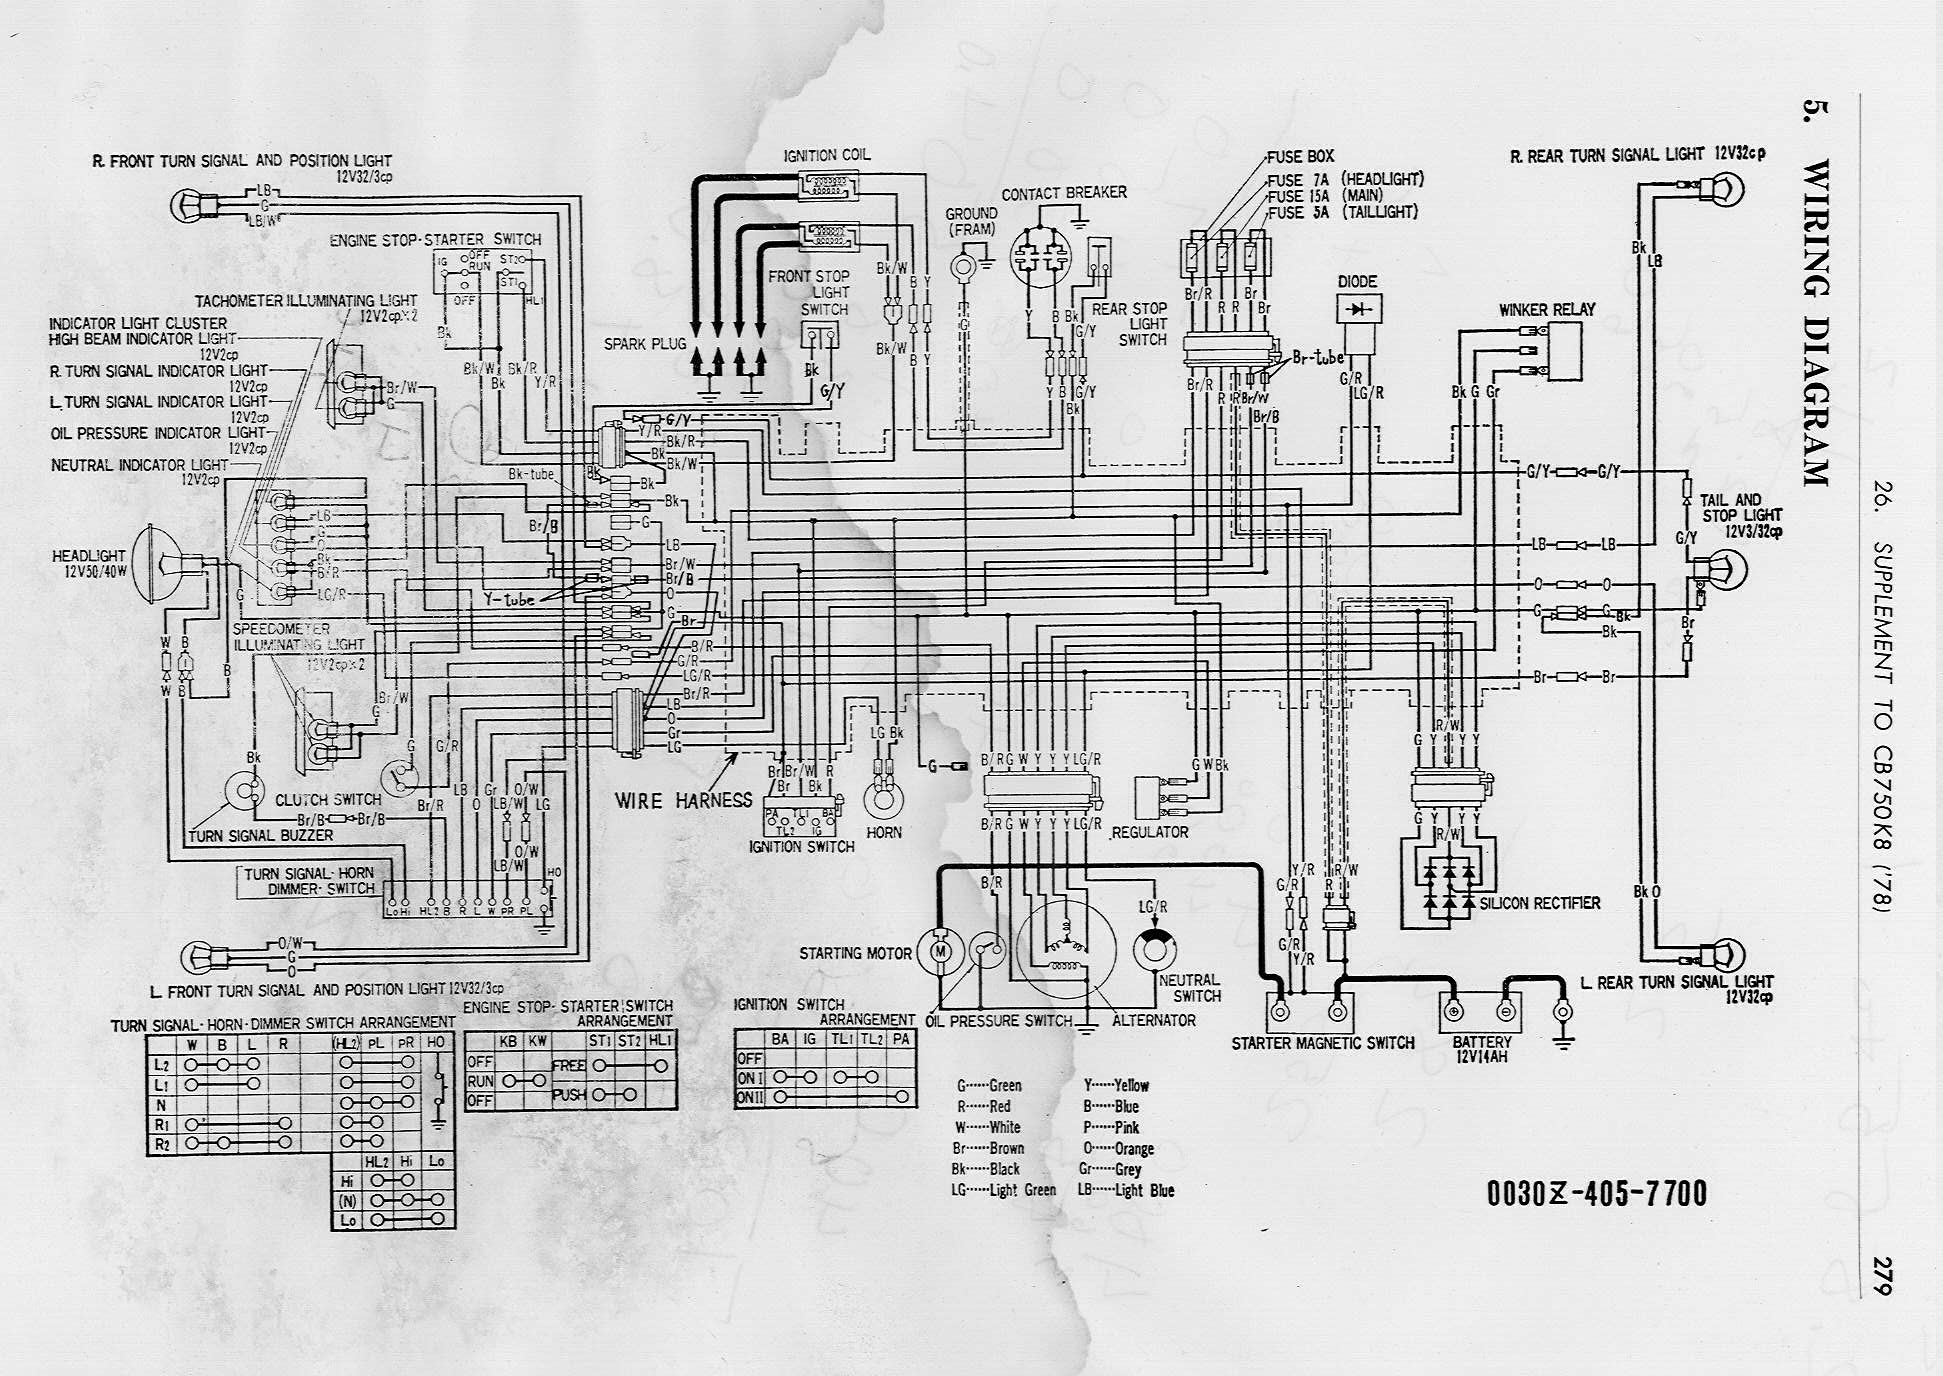 82 honda nighthawk 750 wiring diagram